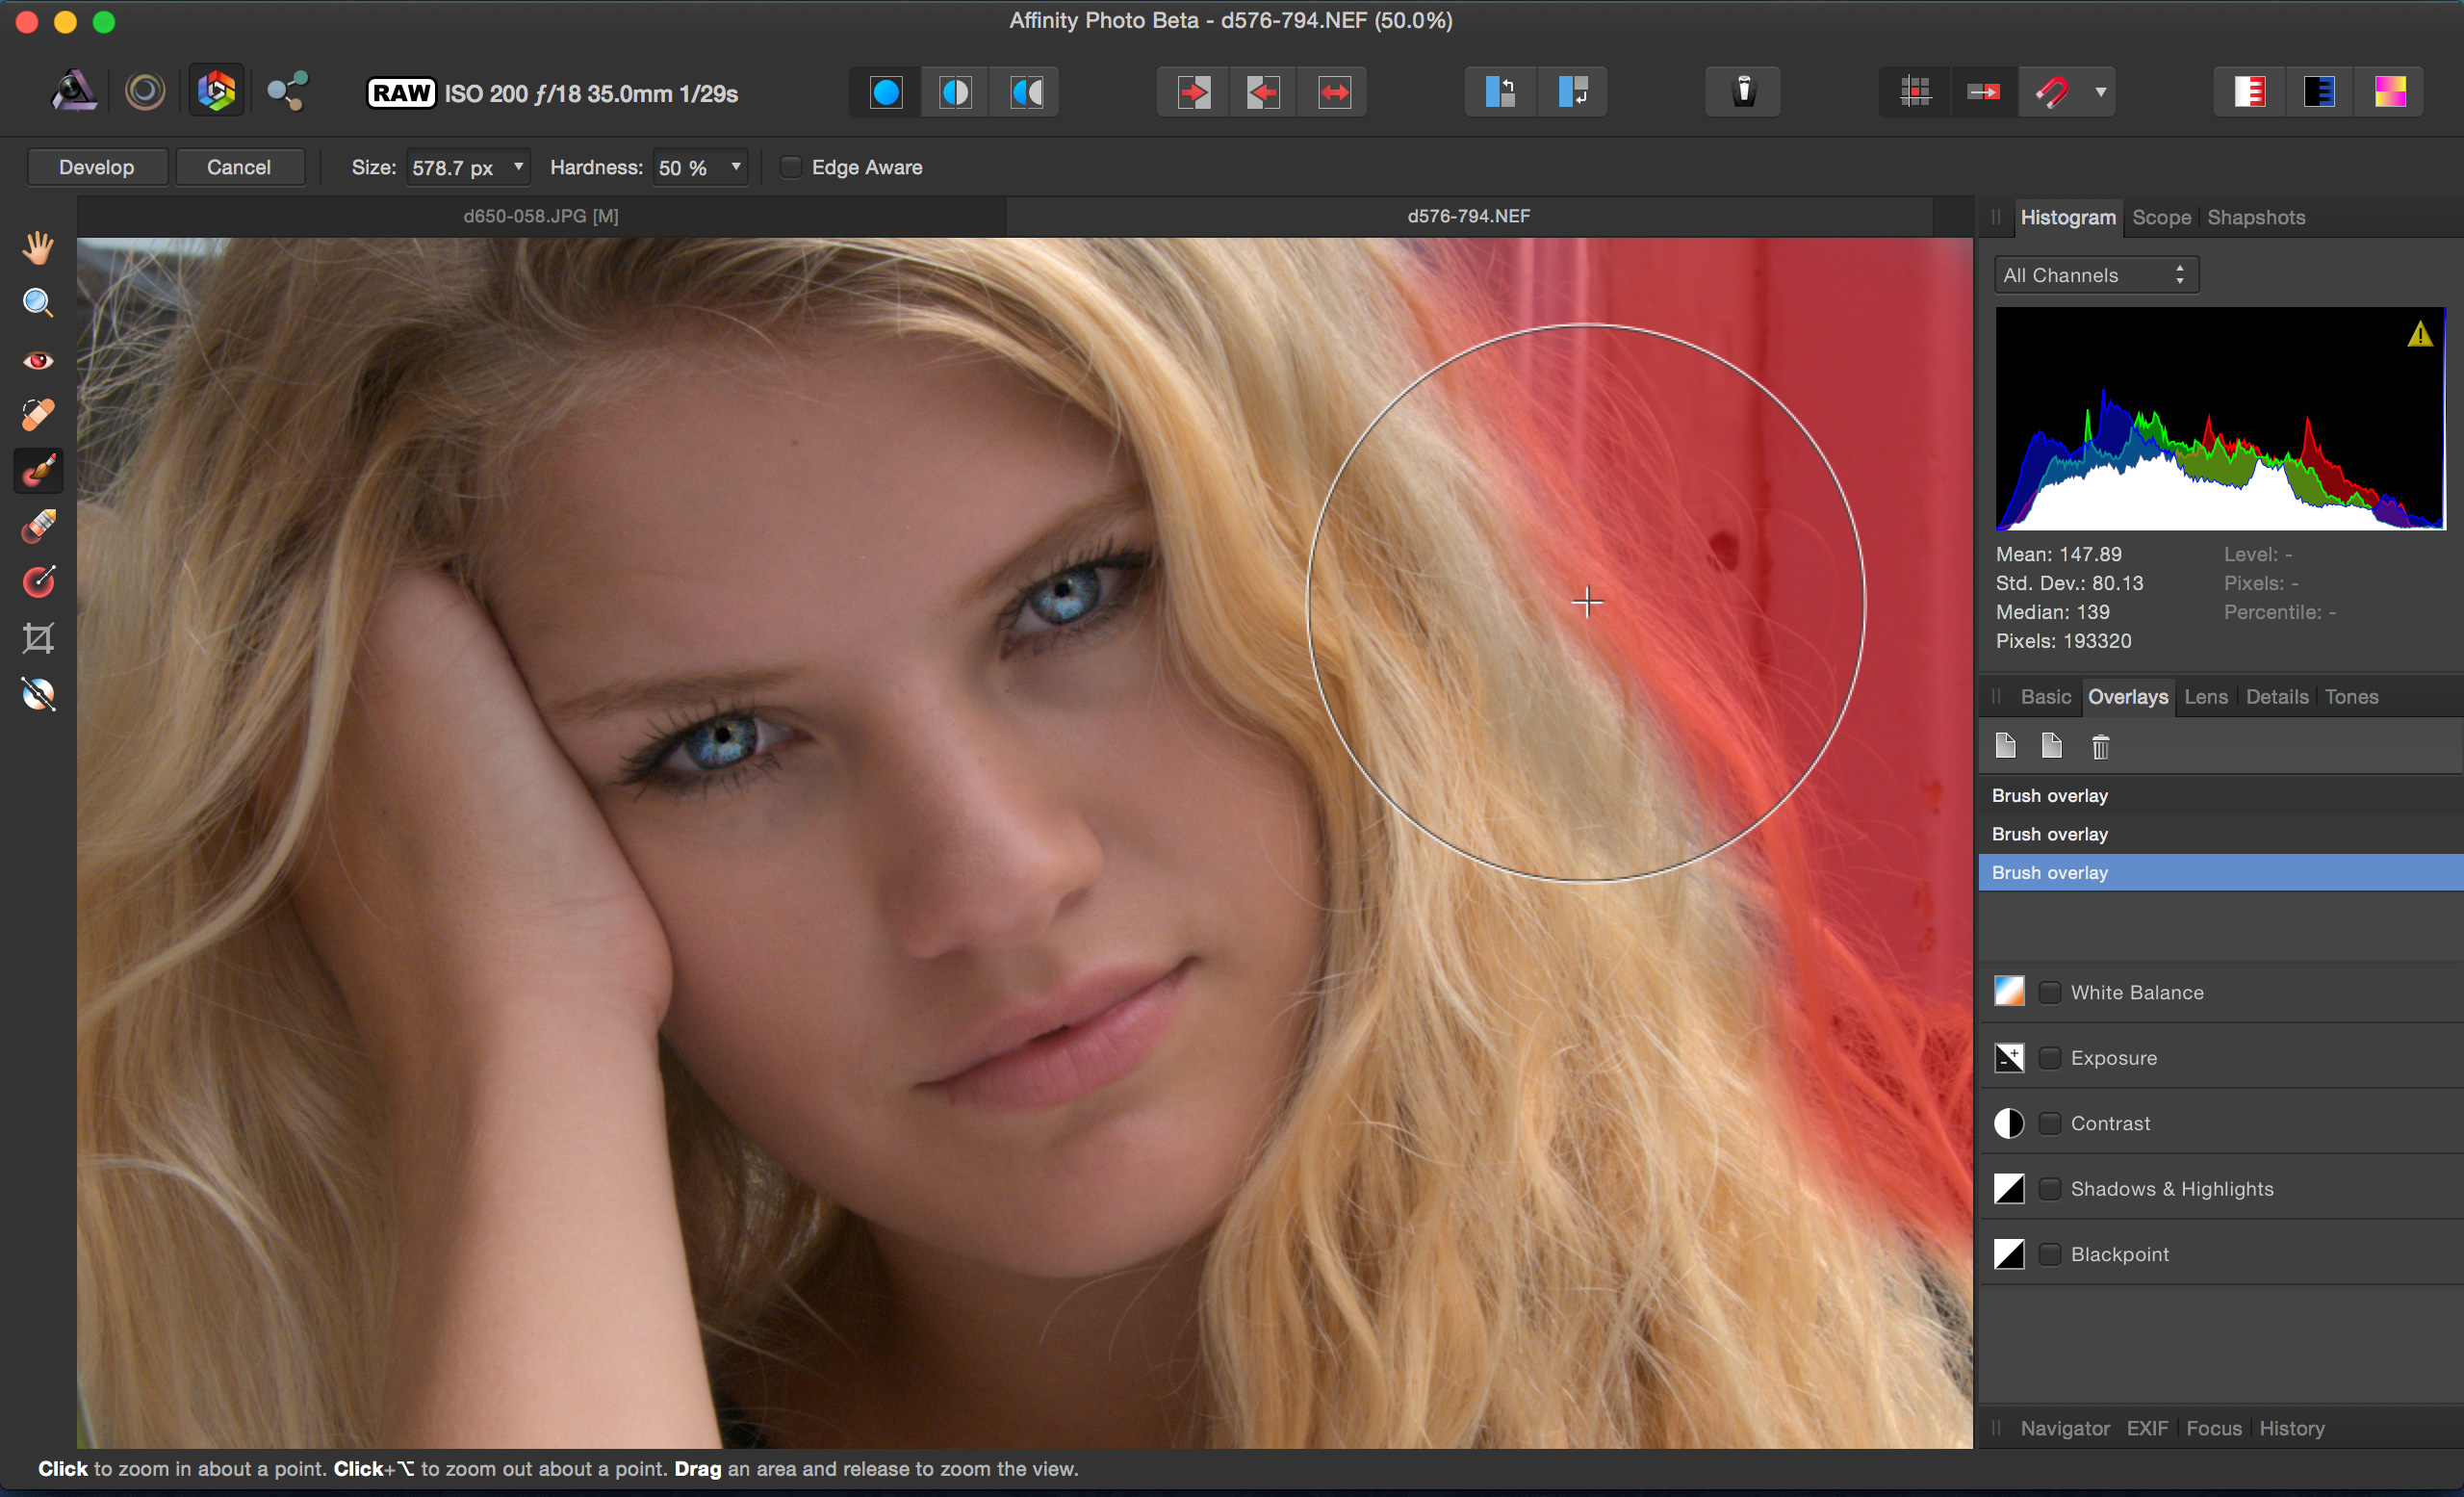 Supple Serif Launches Full On Photoshop Rival At One Third Price Techradar Serif Launches Full On Photoshop Rival At One Third Price Affinity Photo 1 5 Vs Photoshop Affinity Photo Or Photoshop dpreview Affinity Photo Vs Photoshop